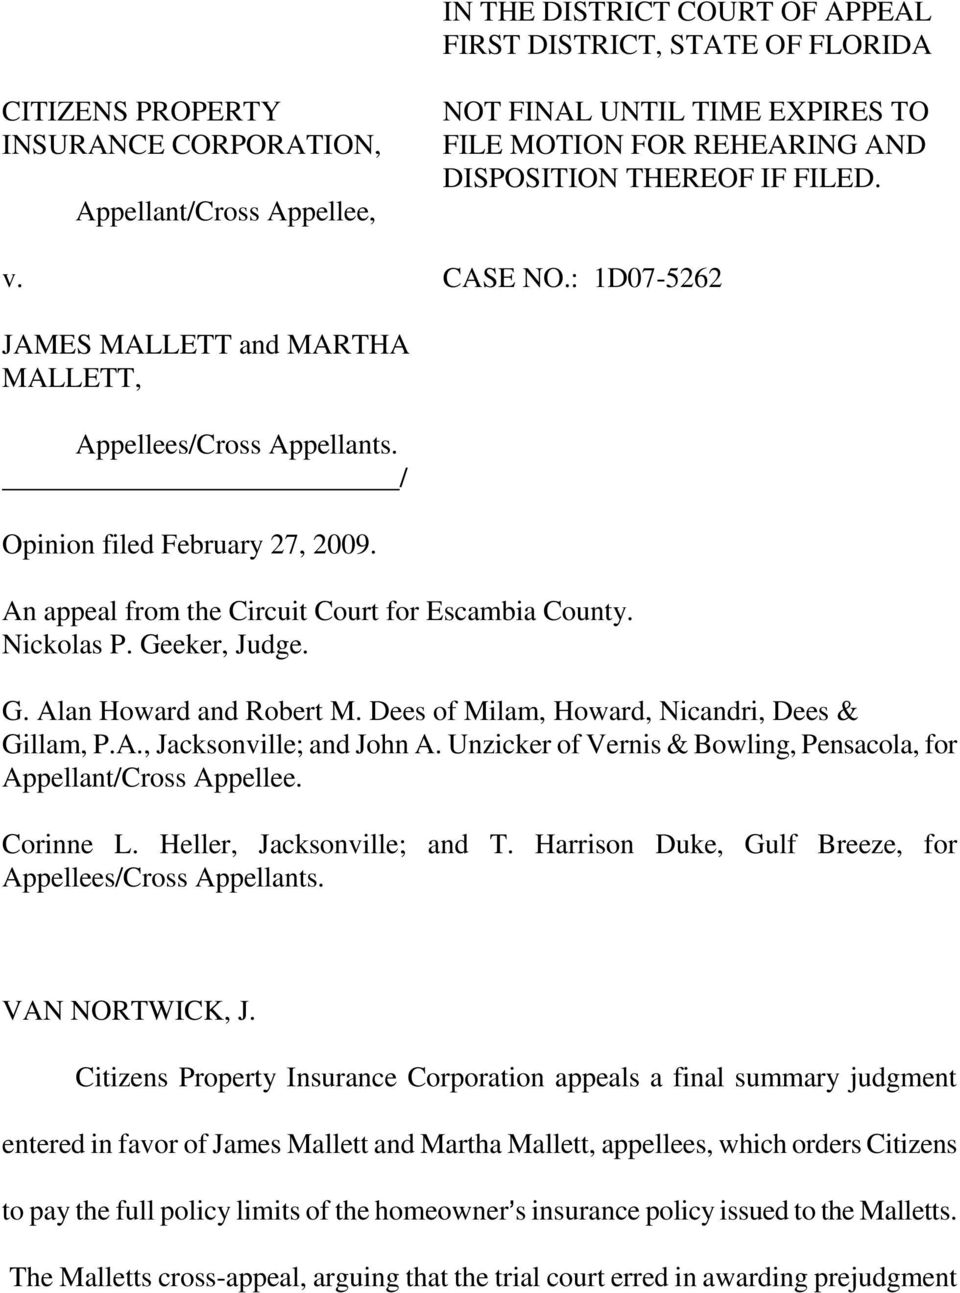 An appeal from the Circuit Court for Escambia County. Nickolas P. Geeker, Judge. G. Alan Howard and Robert M. Dees of Milam, Howard, Nicandri, Dees & Gillam, P.A., Jacksonville; and John A.